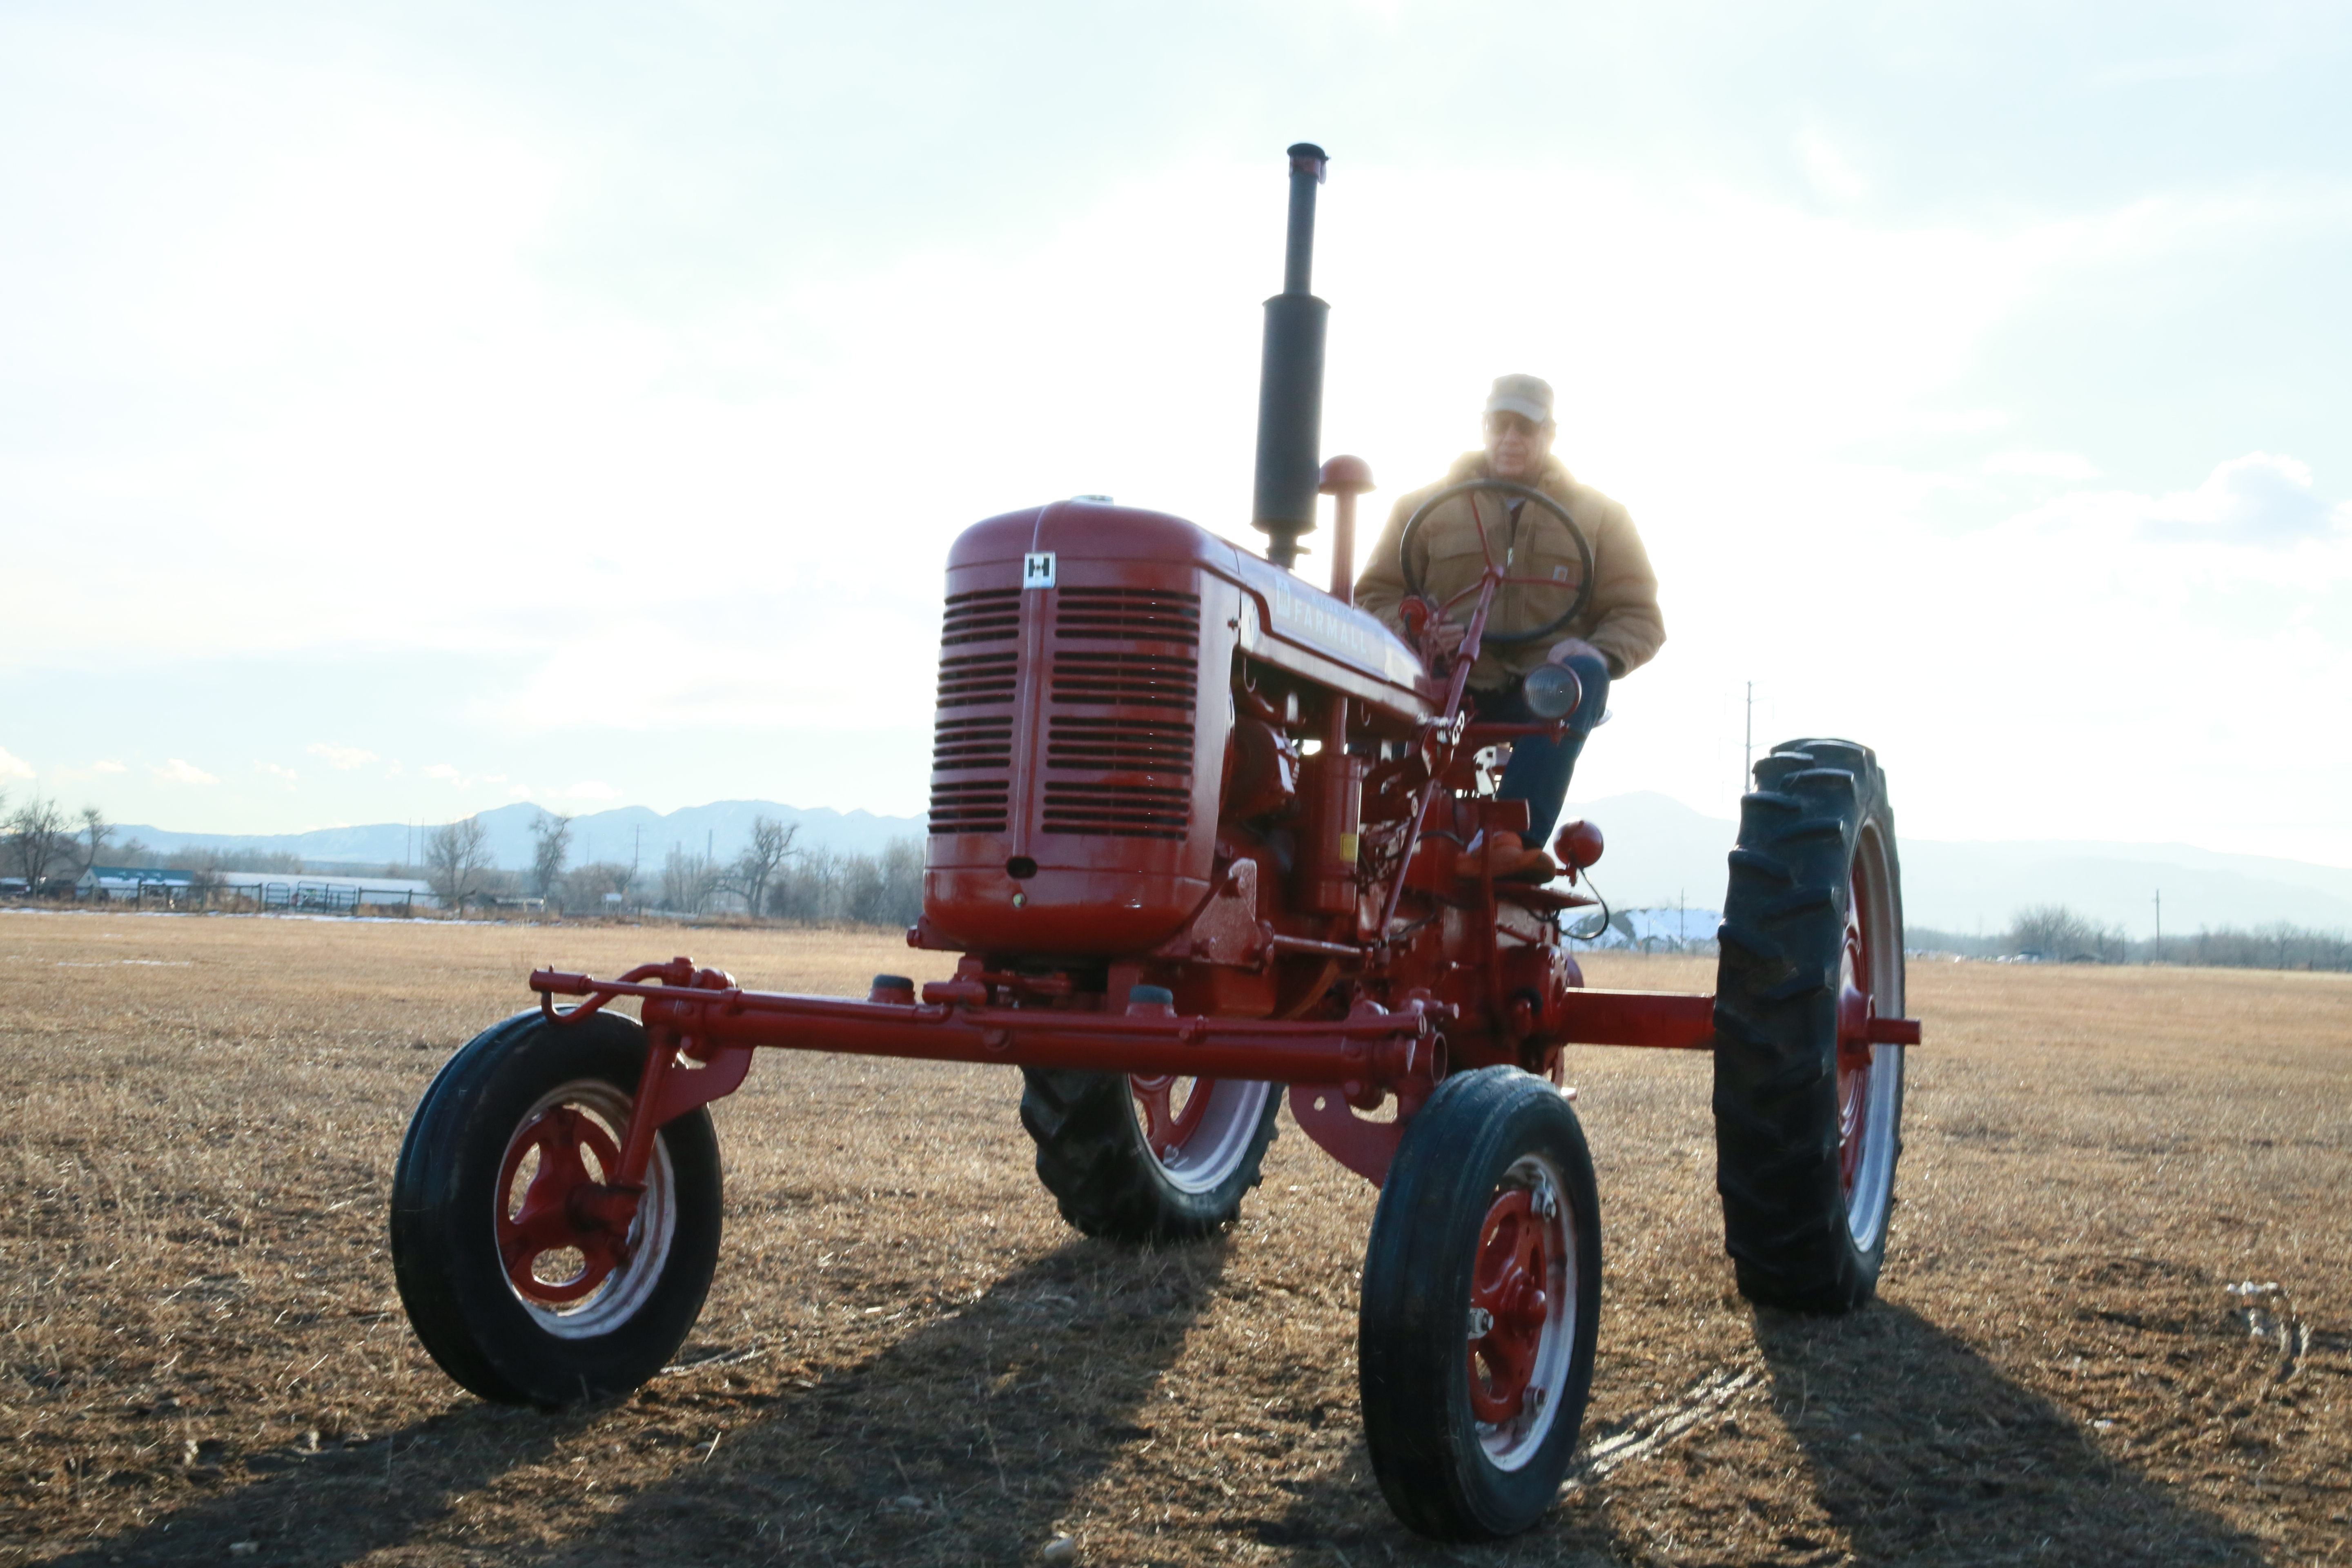 Farmer John has been championing local farming in Boulder County for decades.